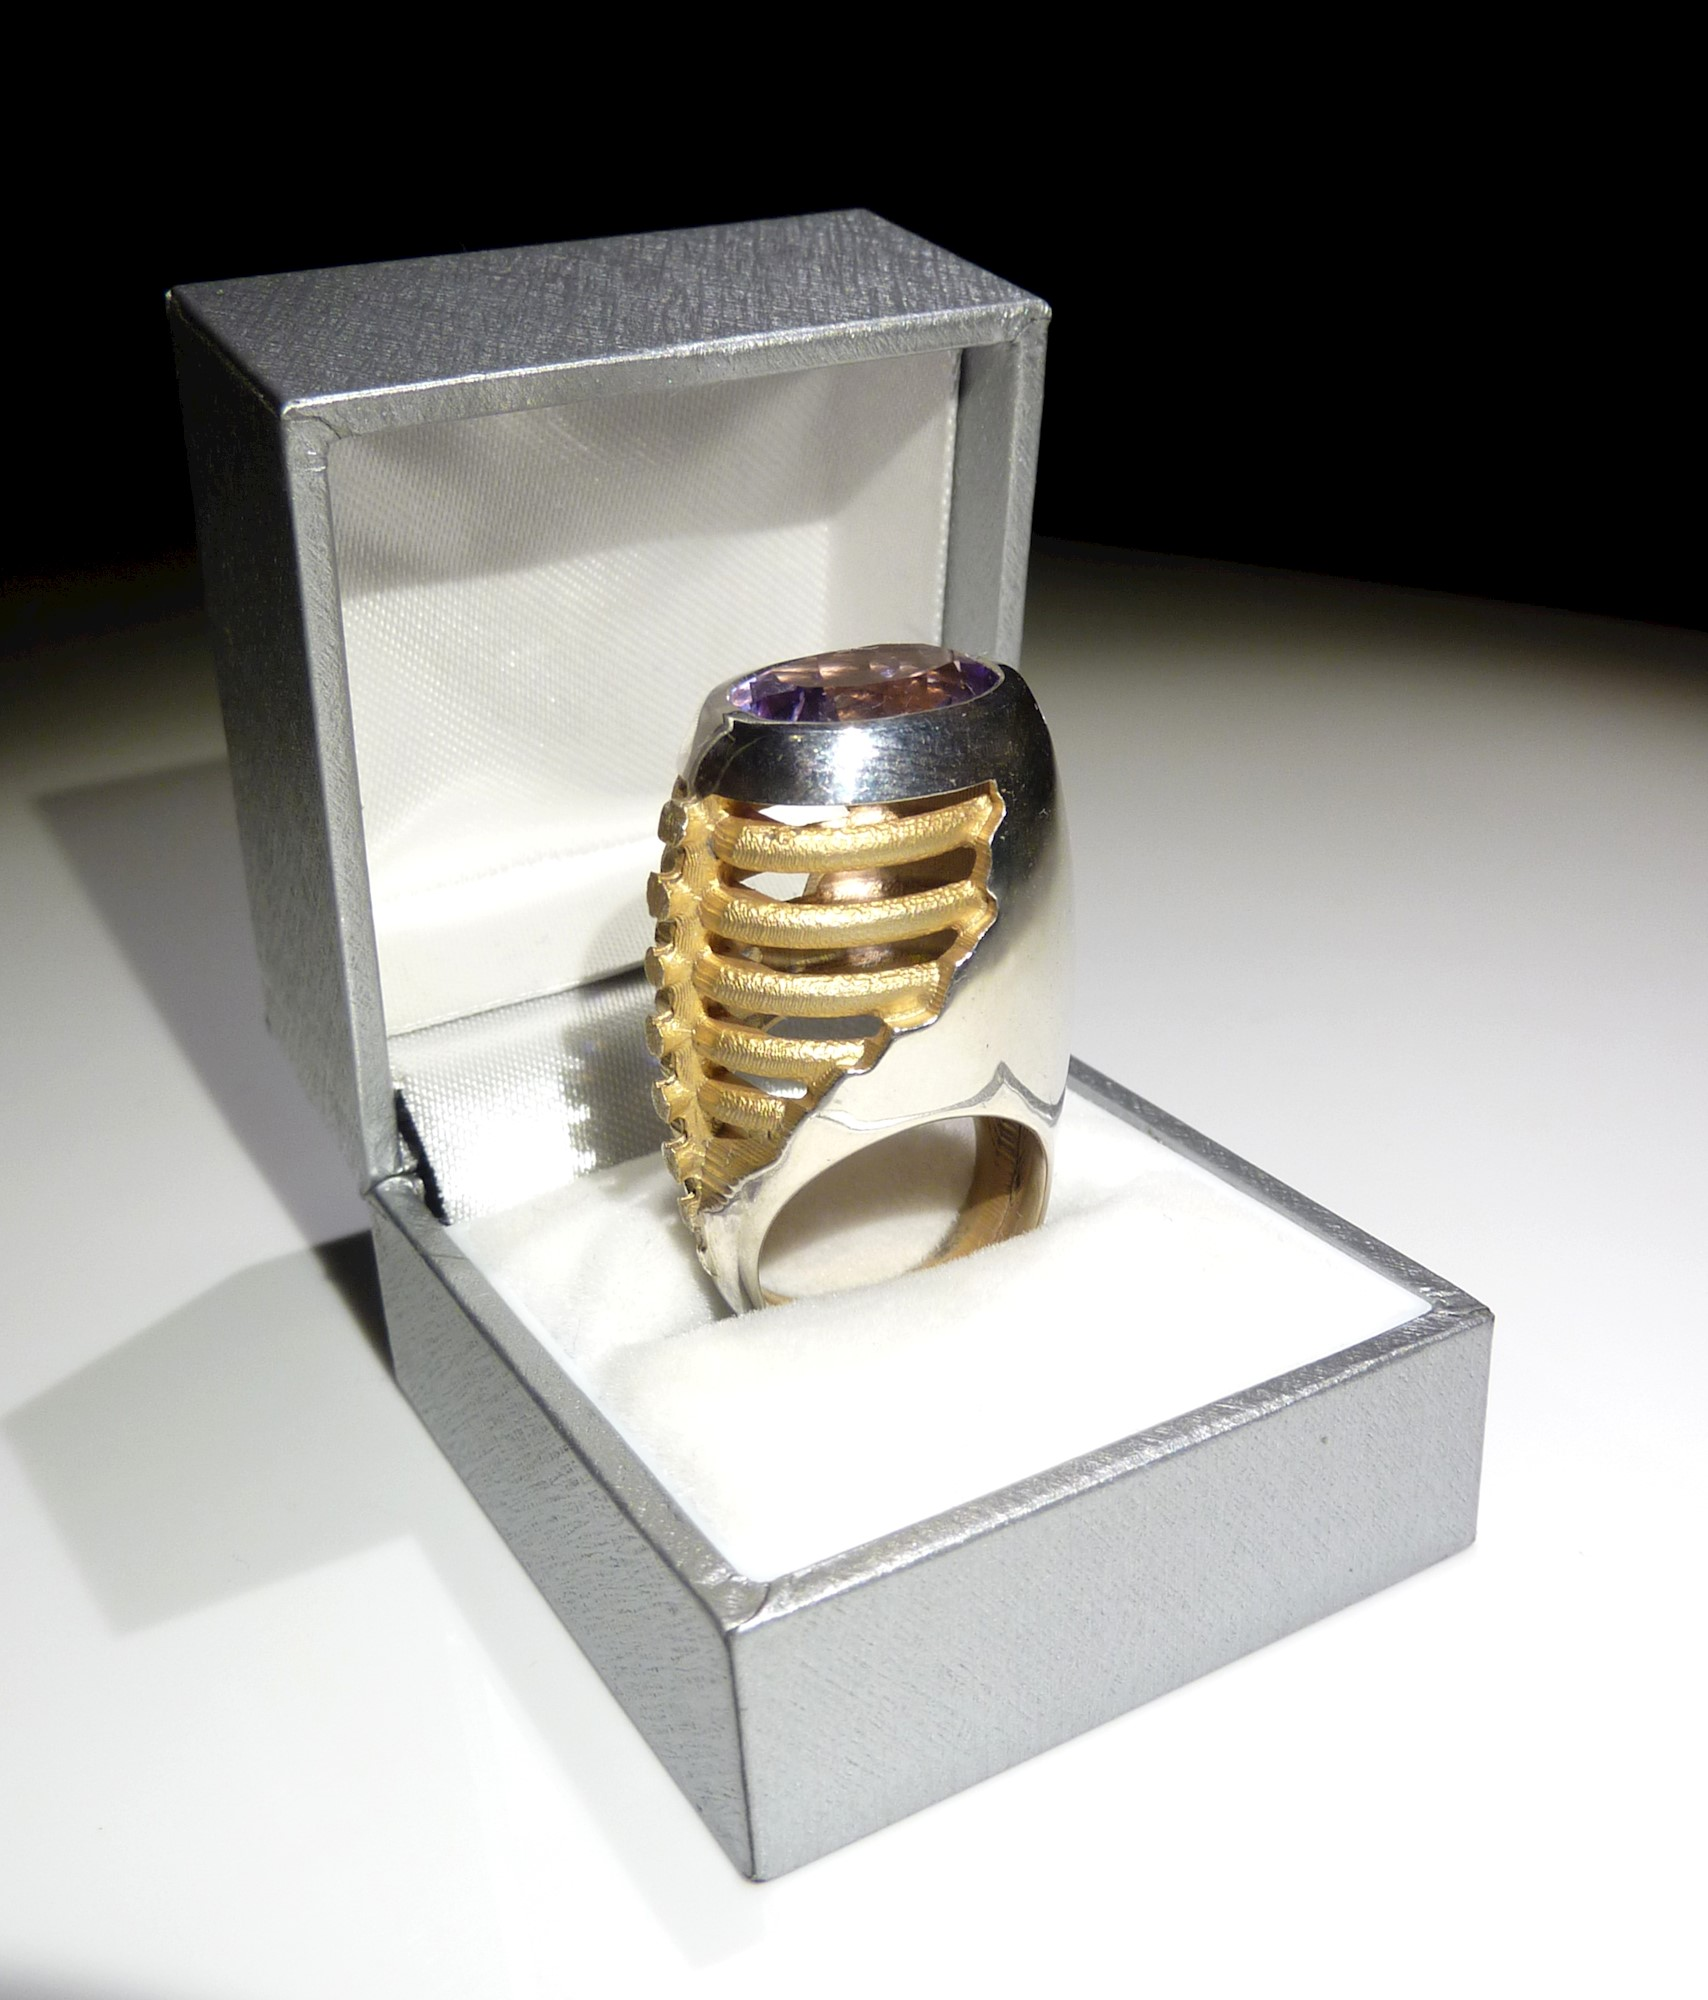 'Amethyst Backbone Cocktail Ring' by artist Inness Thomson